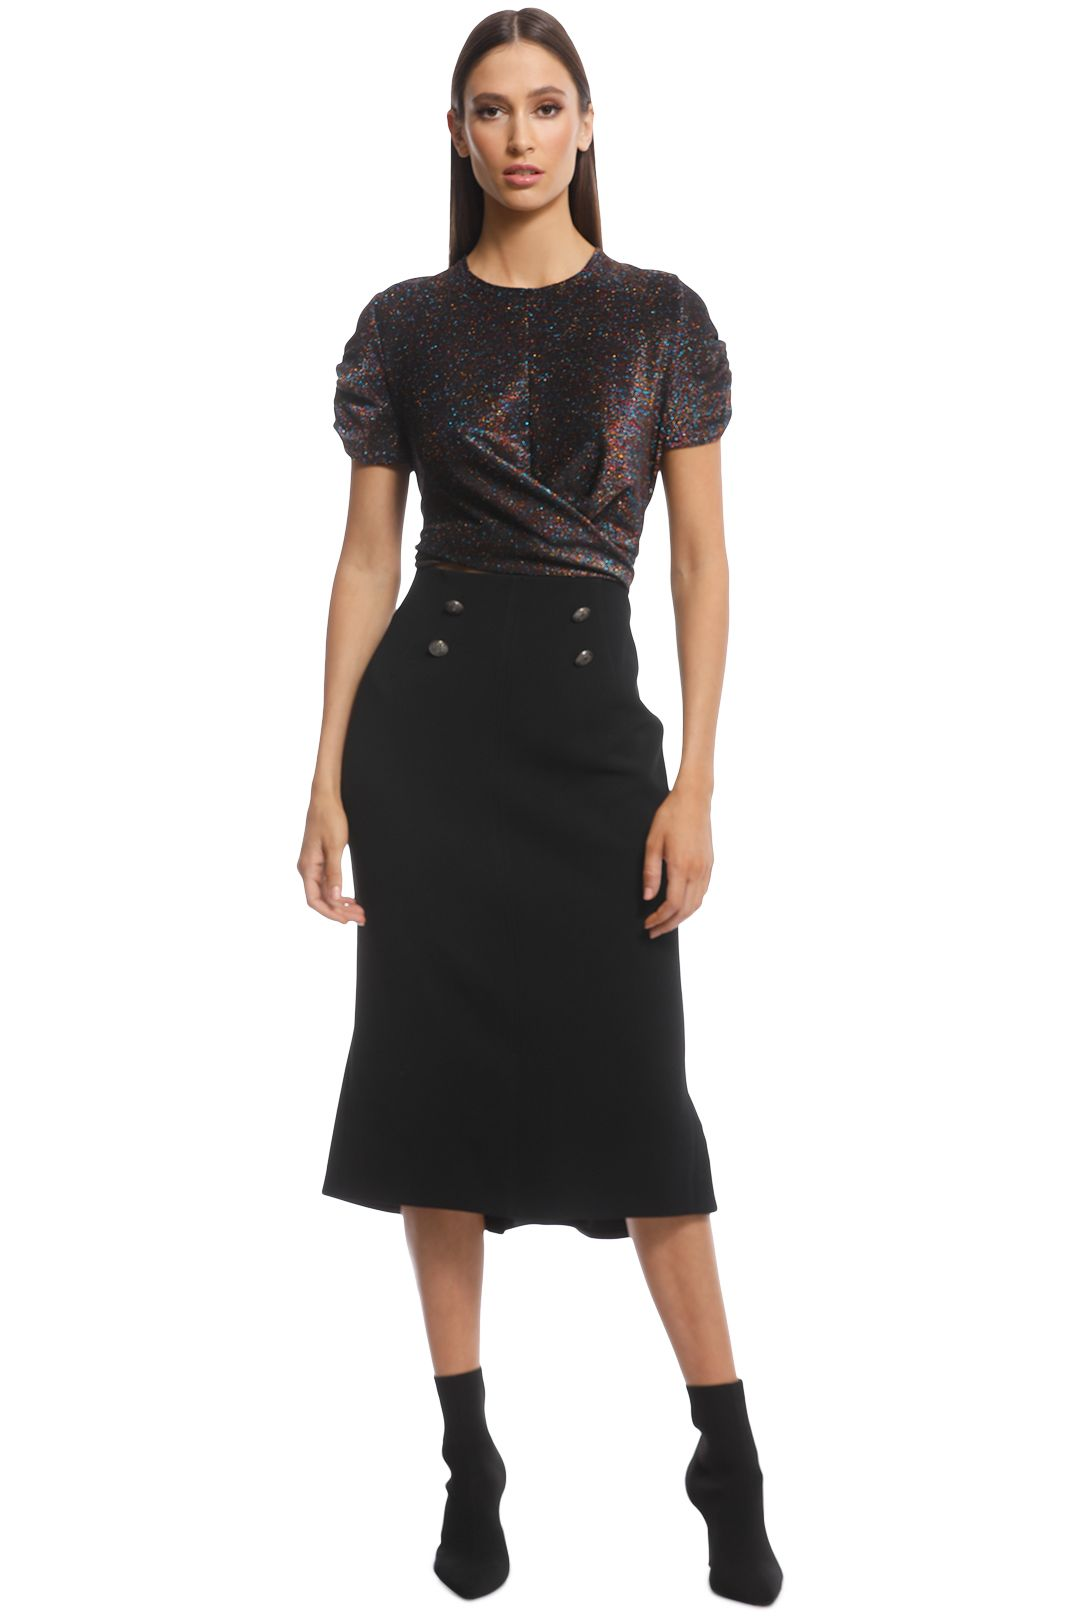 Ginger and Smart - Suffuse Skirt - Black - Front